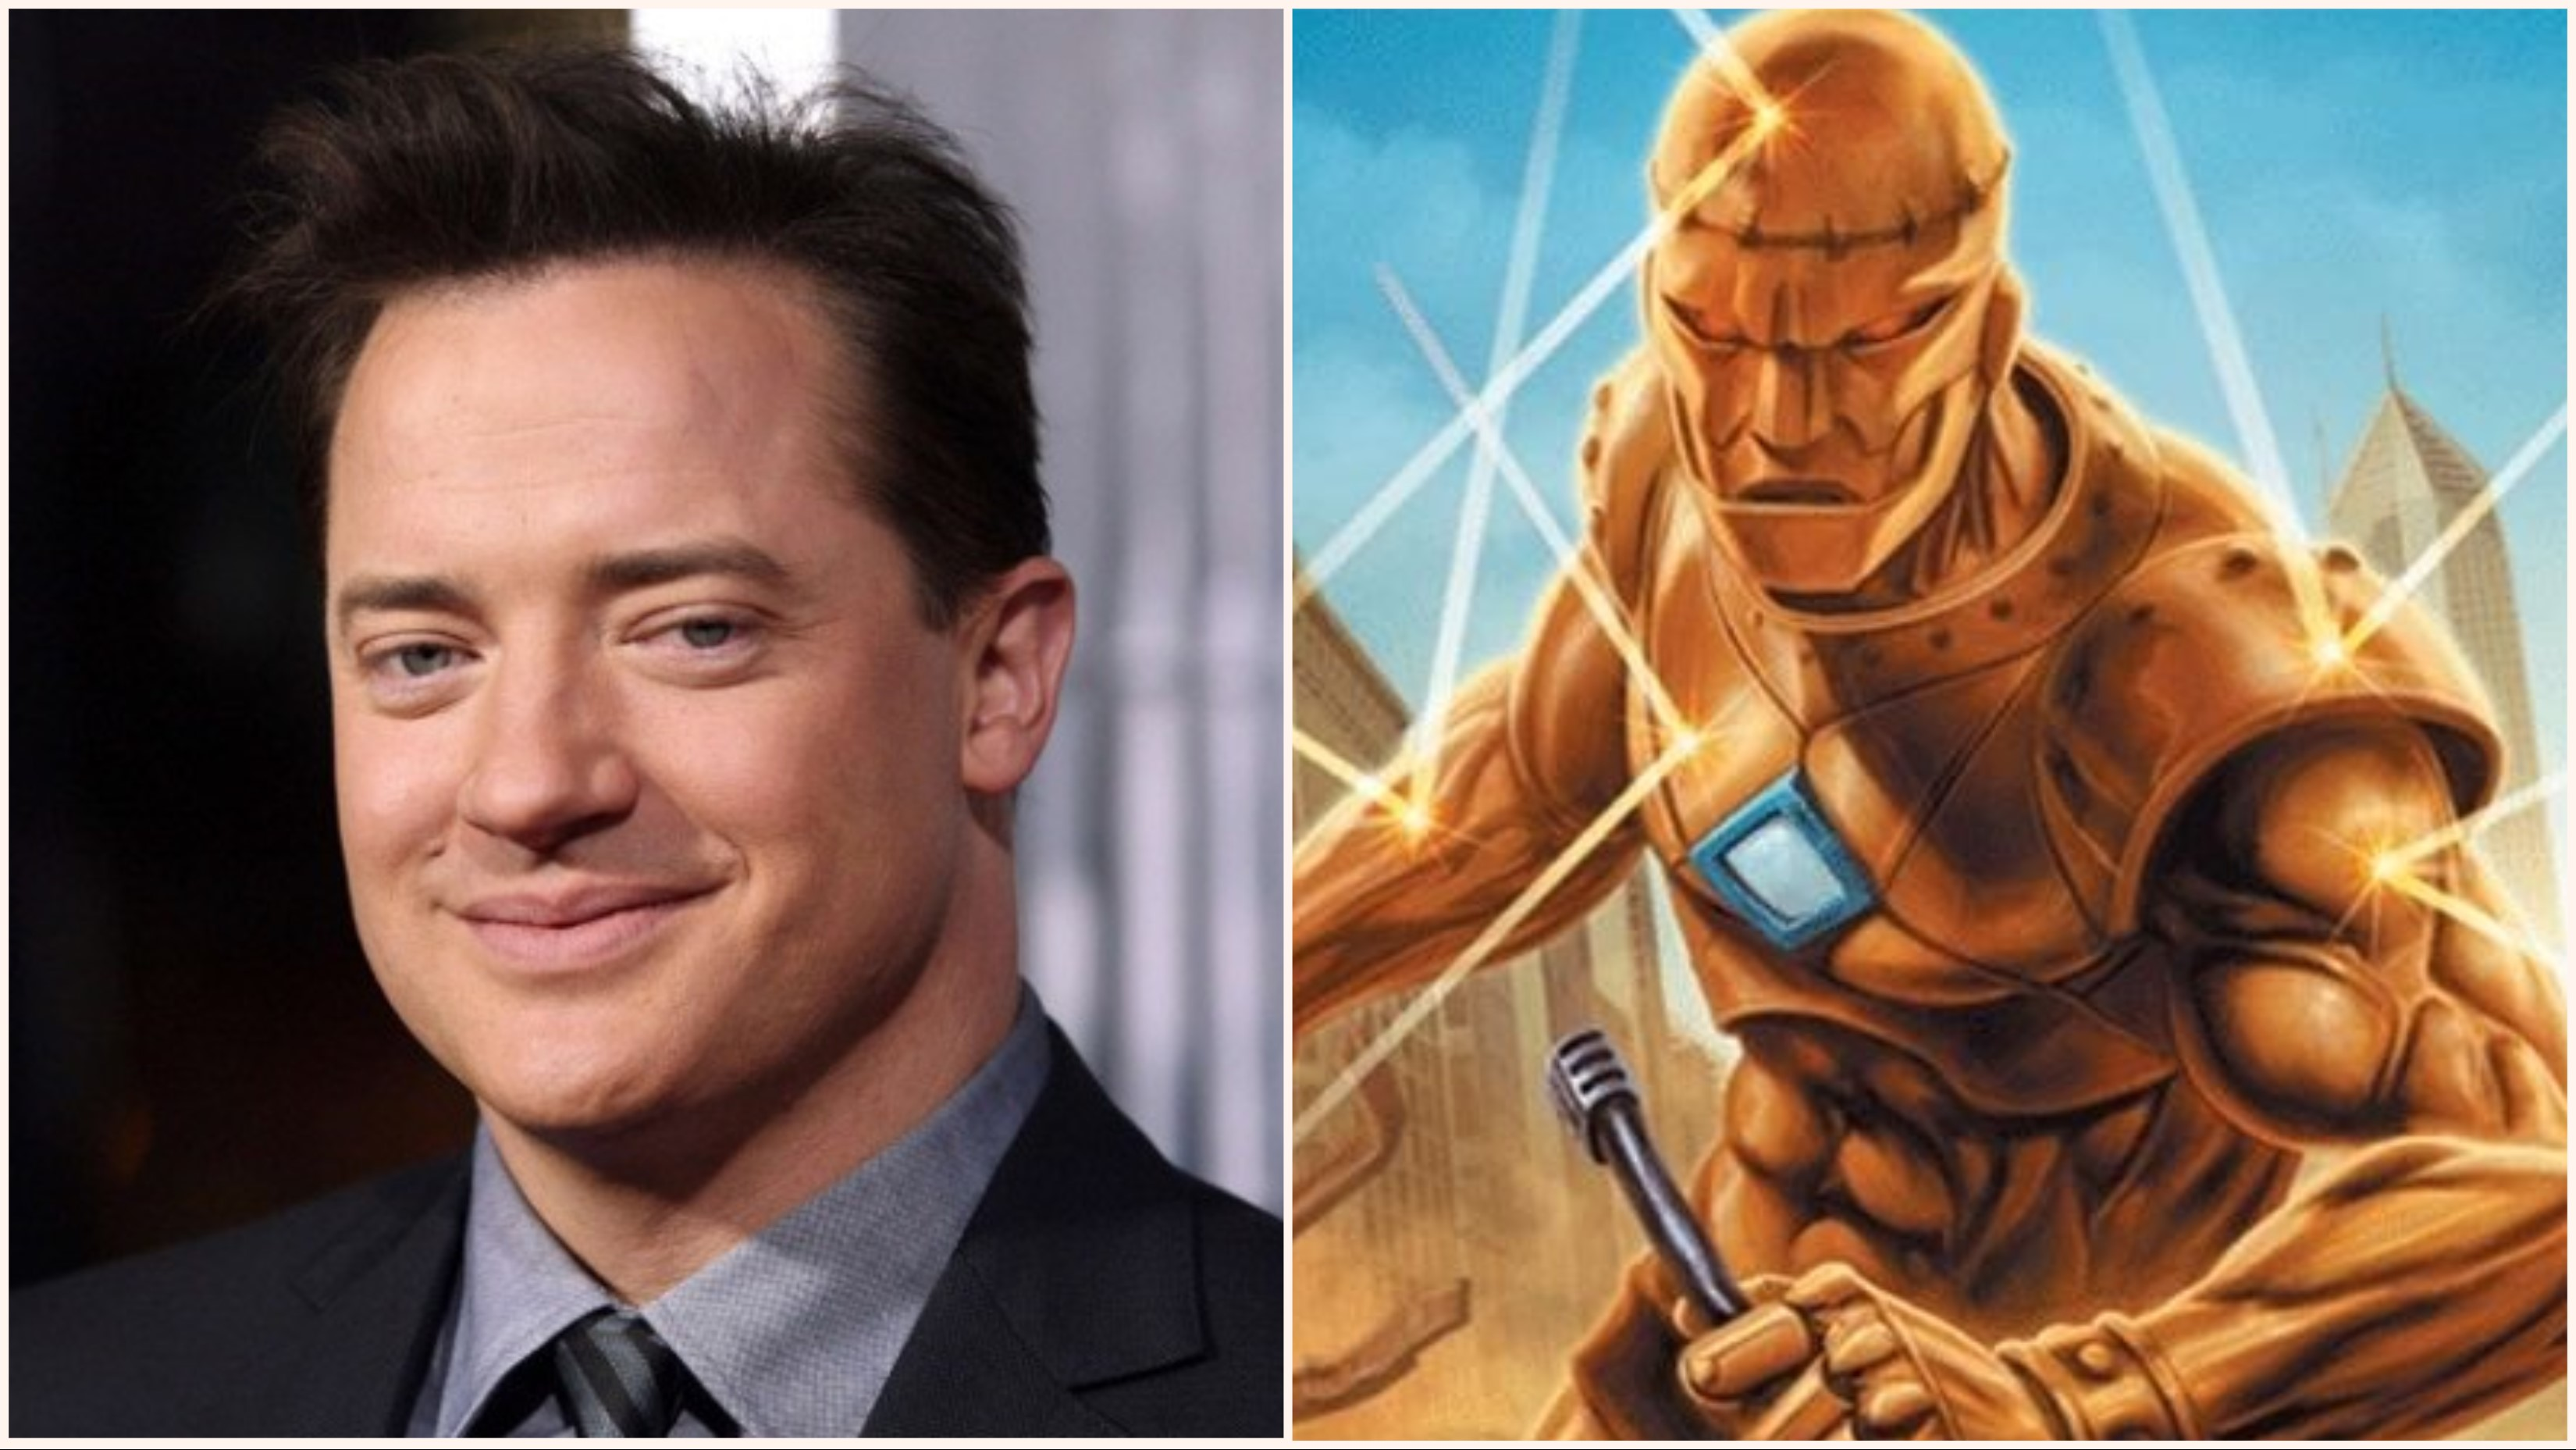 Brendan Fraser Joins 'Doom Patrol' As Robotman